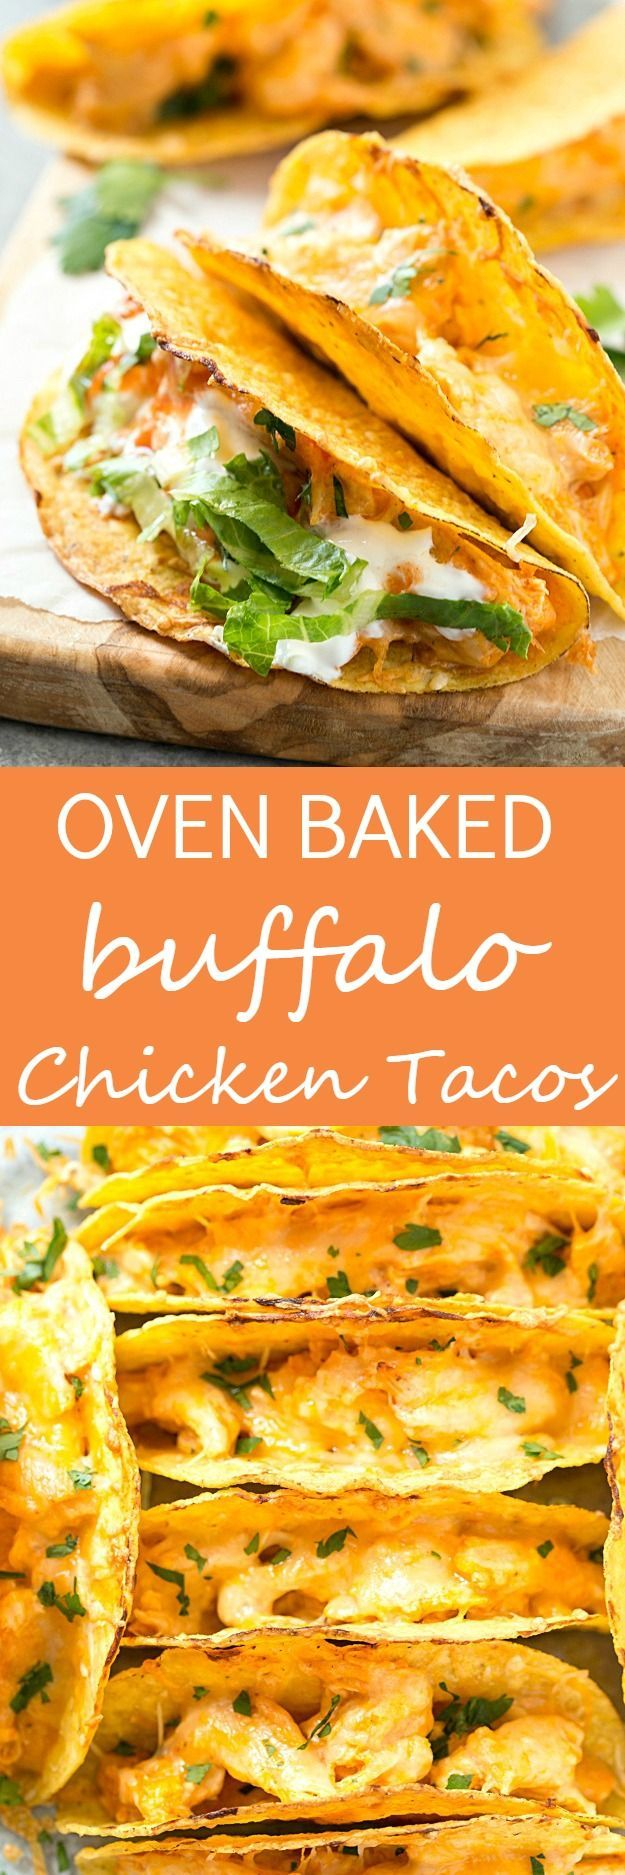 Best 25 chicken taco recipes ideas on pinterest easy chicken tacos healthy chicken tacos and - Easy oven dinner ...